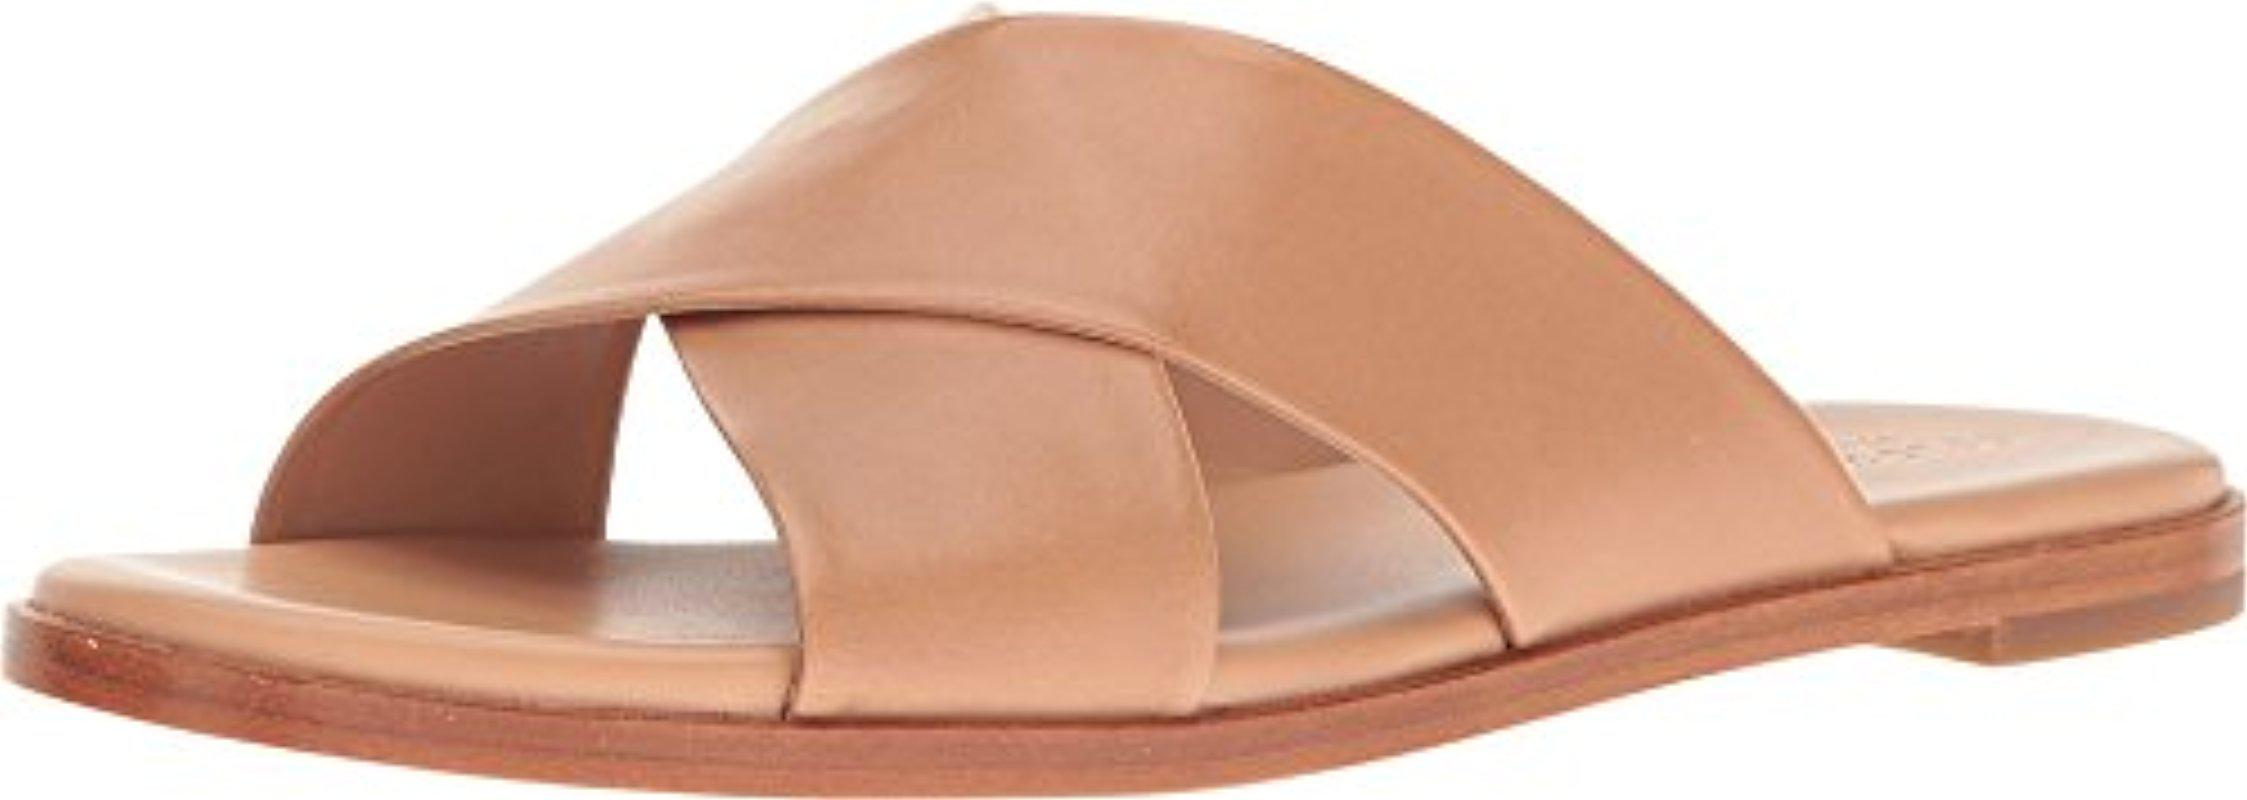 eab7bfba906 Lyst - Cole Haan Anica Criss Cross Sandal Slide in Natural